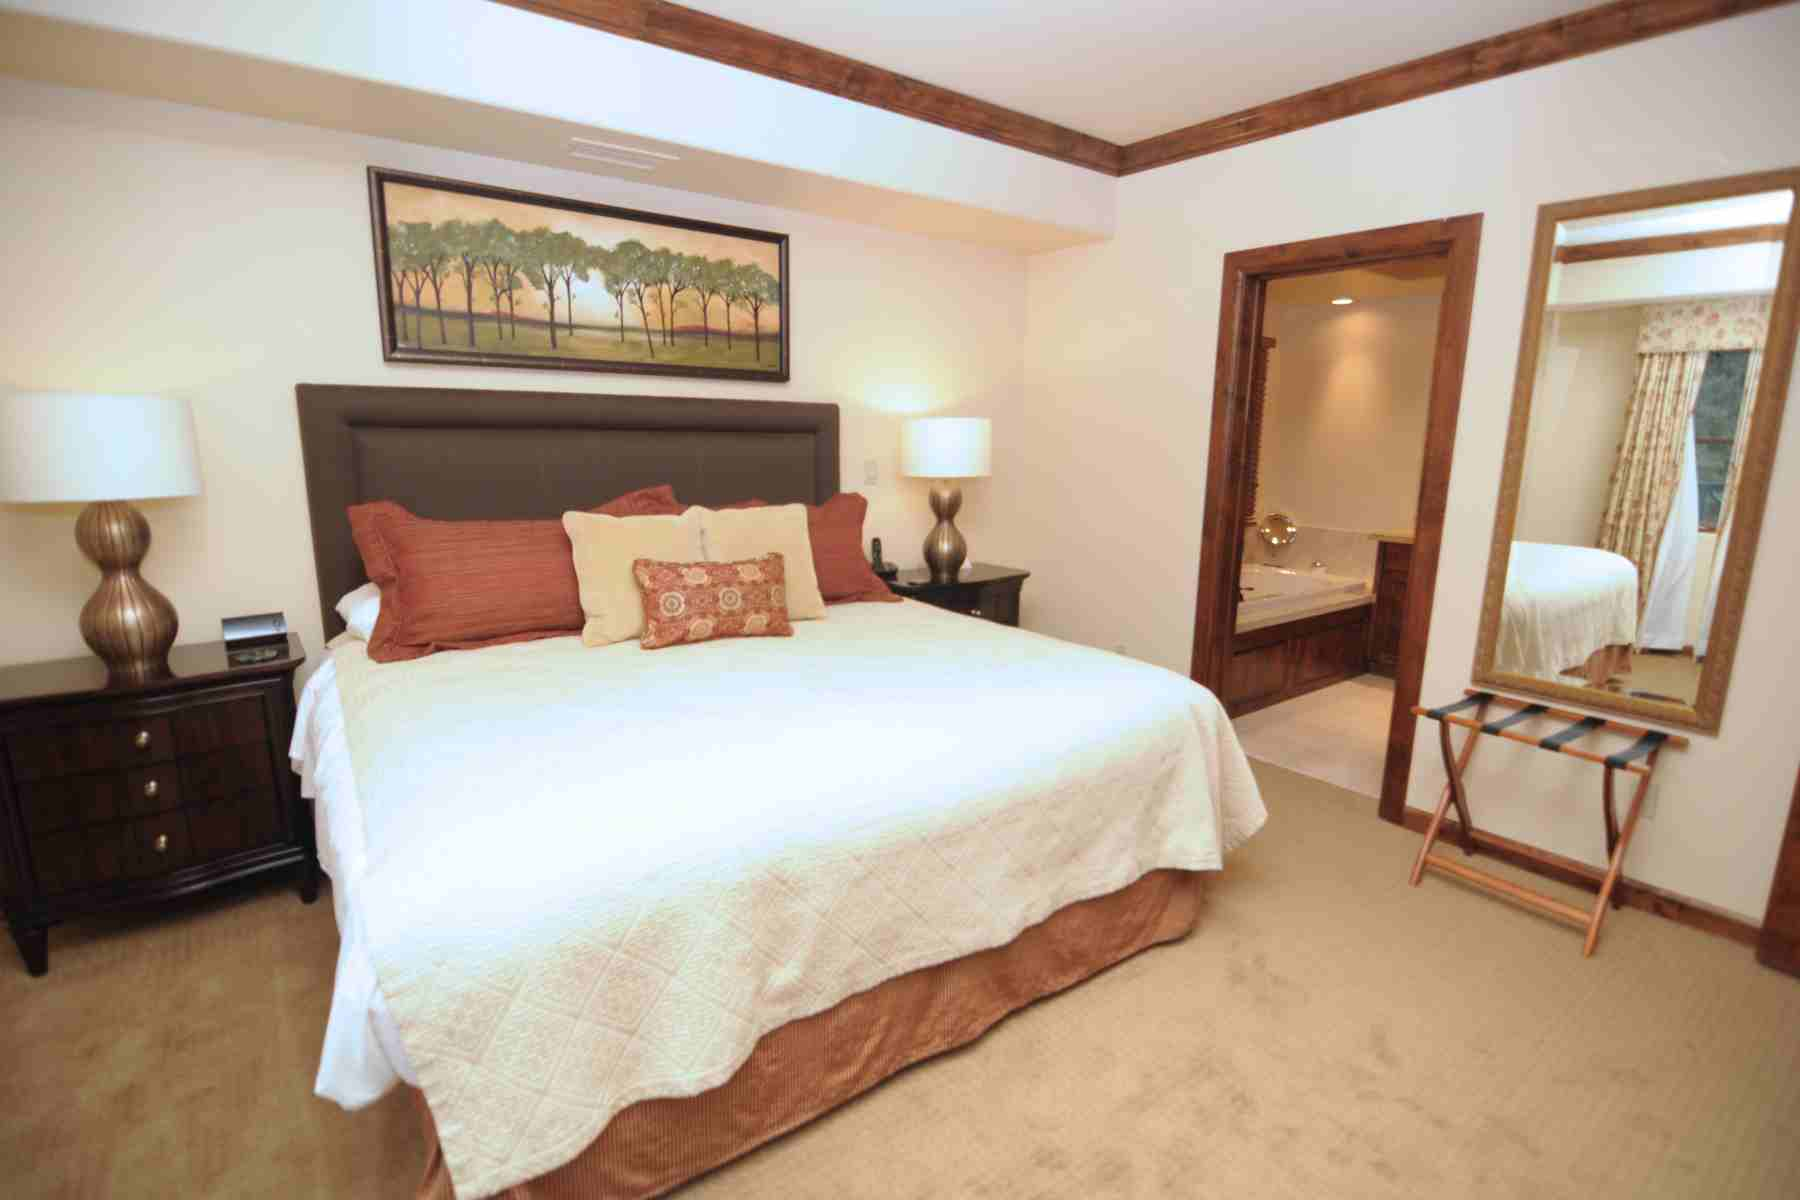 Additional photo for property listing at Exceptional In Town Condo 680 E Sun Valley Rd #1 Ketchum, Idaho 83340 United States